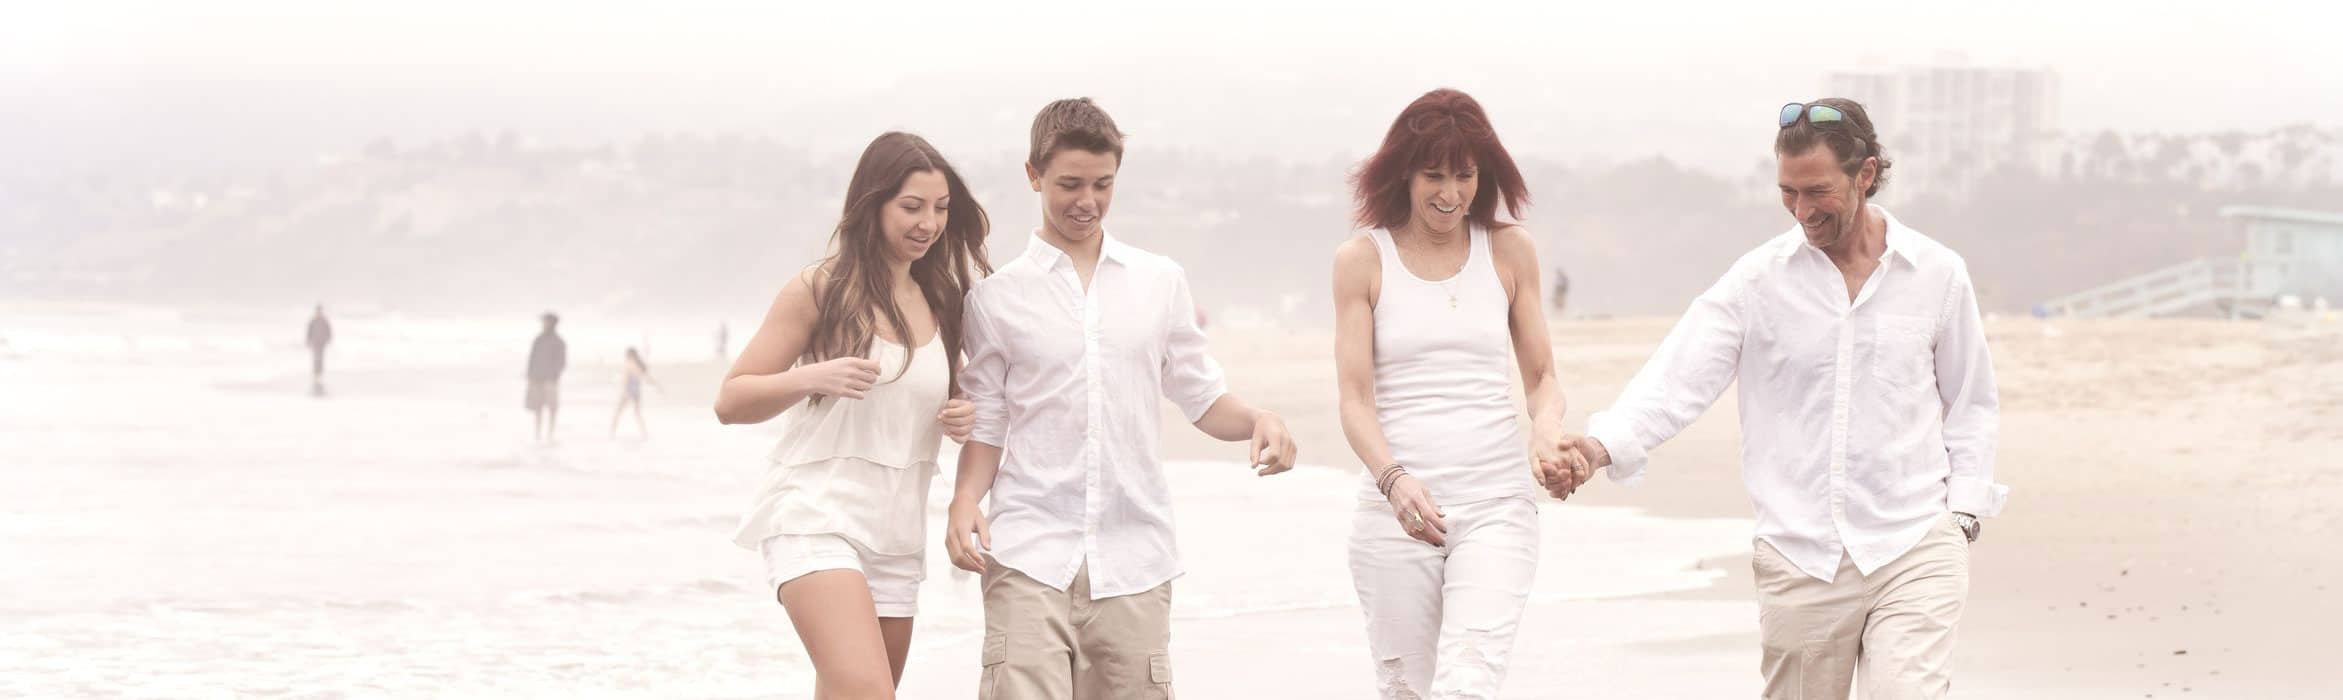 Two parents and two teenagers in white clothes walking happily on the beach in Los Angeles